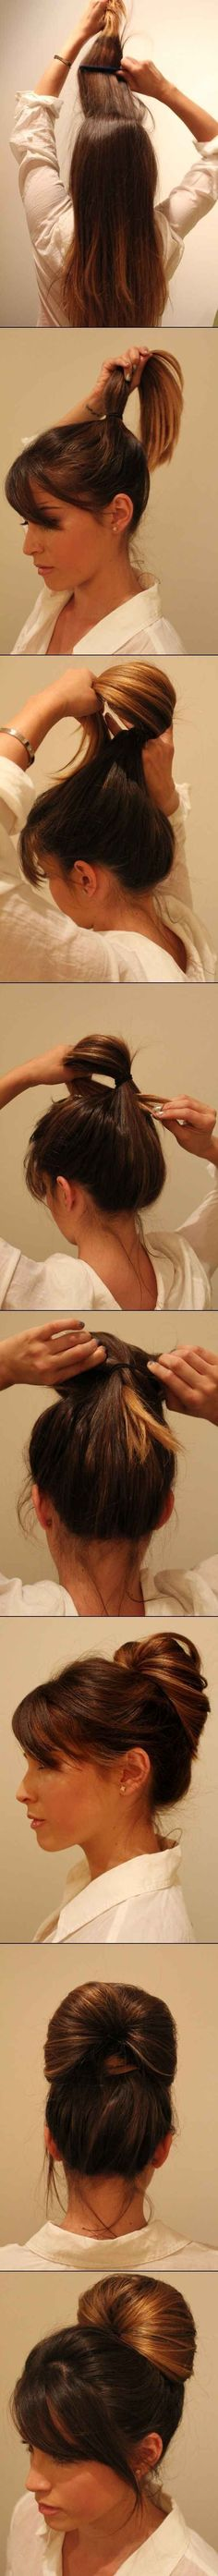 www.beautynstyle.net wp-content uploads 2014 07 Easy-Go-Lazy-Girl-Hair-Style-3.jpg